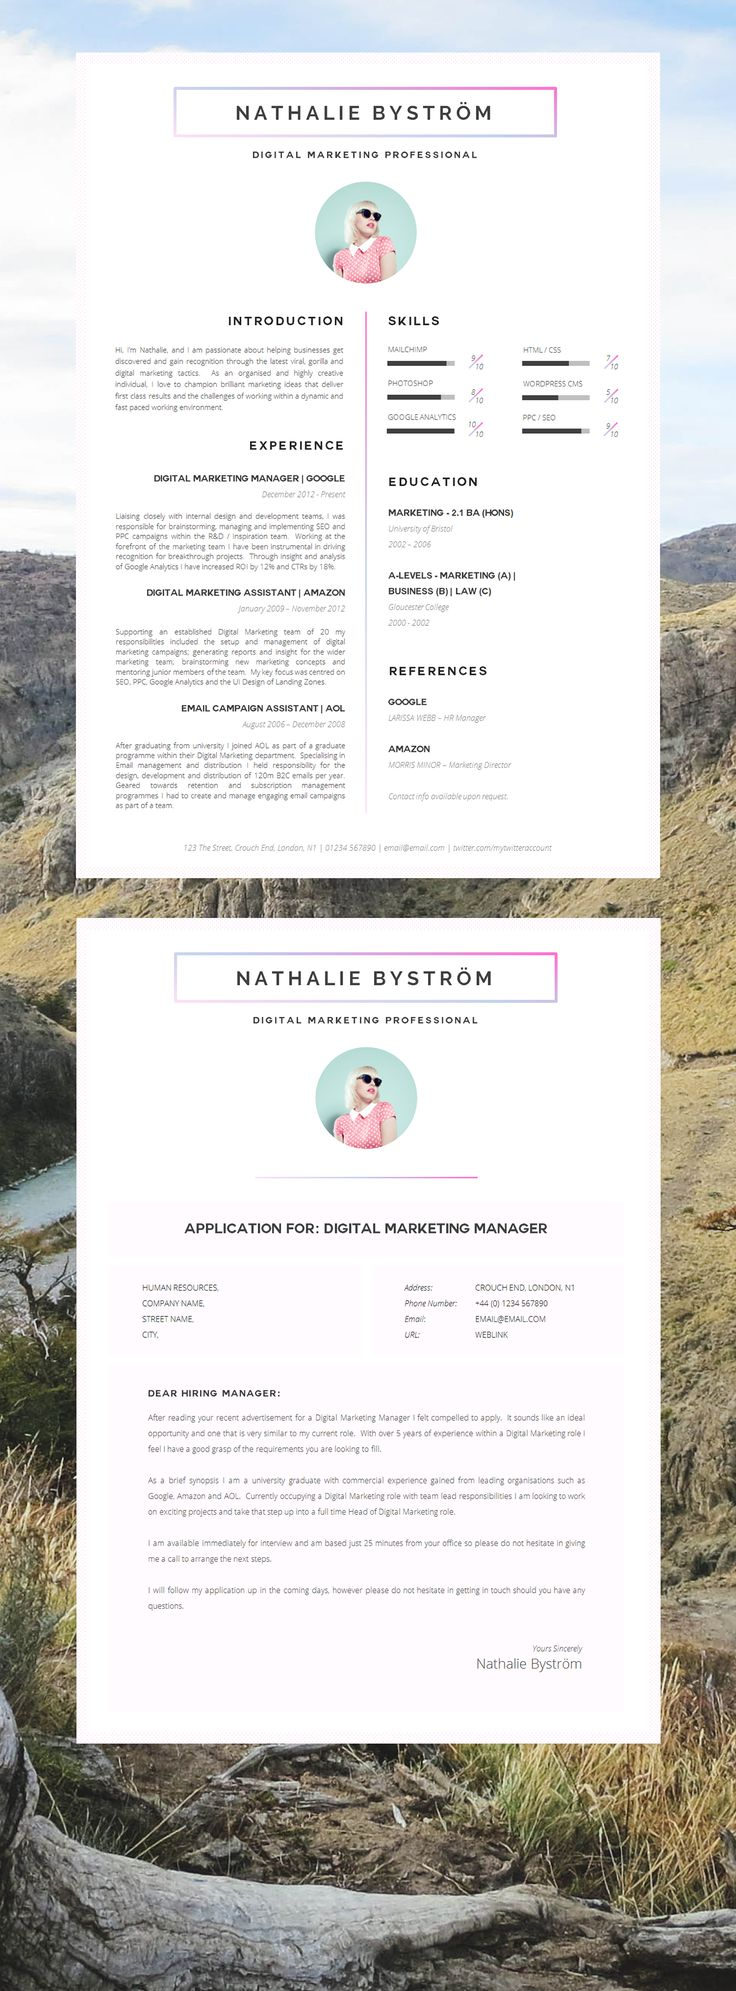 1000 images about biodata for marriage samples on pinterest - Creative Cv Template With Free Advice And Matching Cover Letter